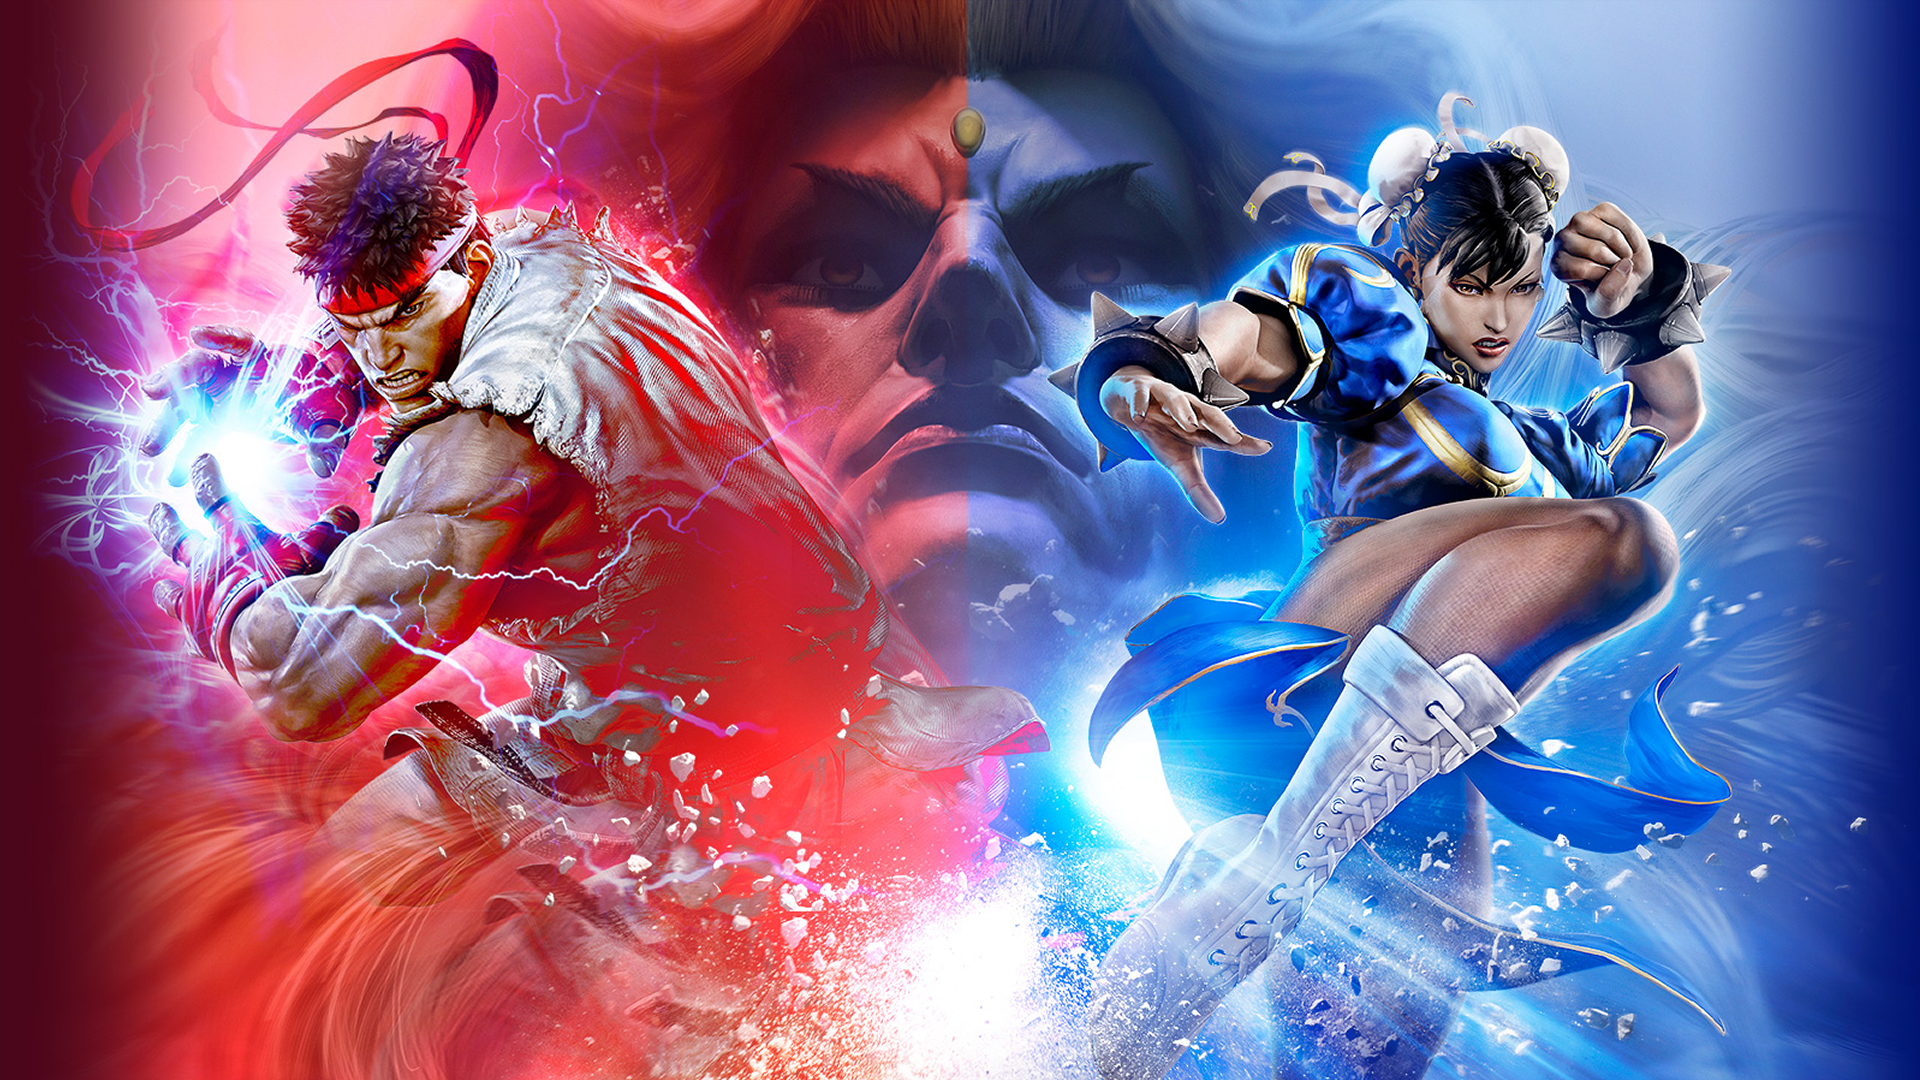 Street Fighter V Championship Edition Wallpaper By Cporsdesigns On